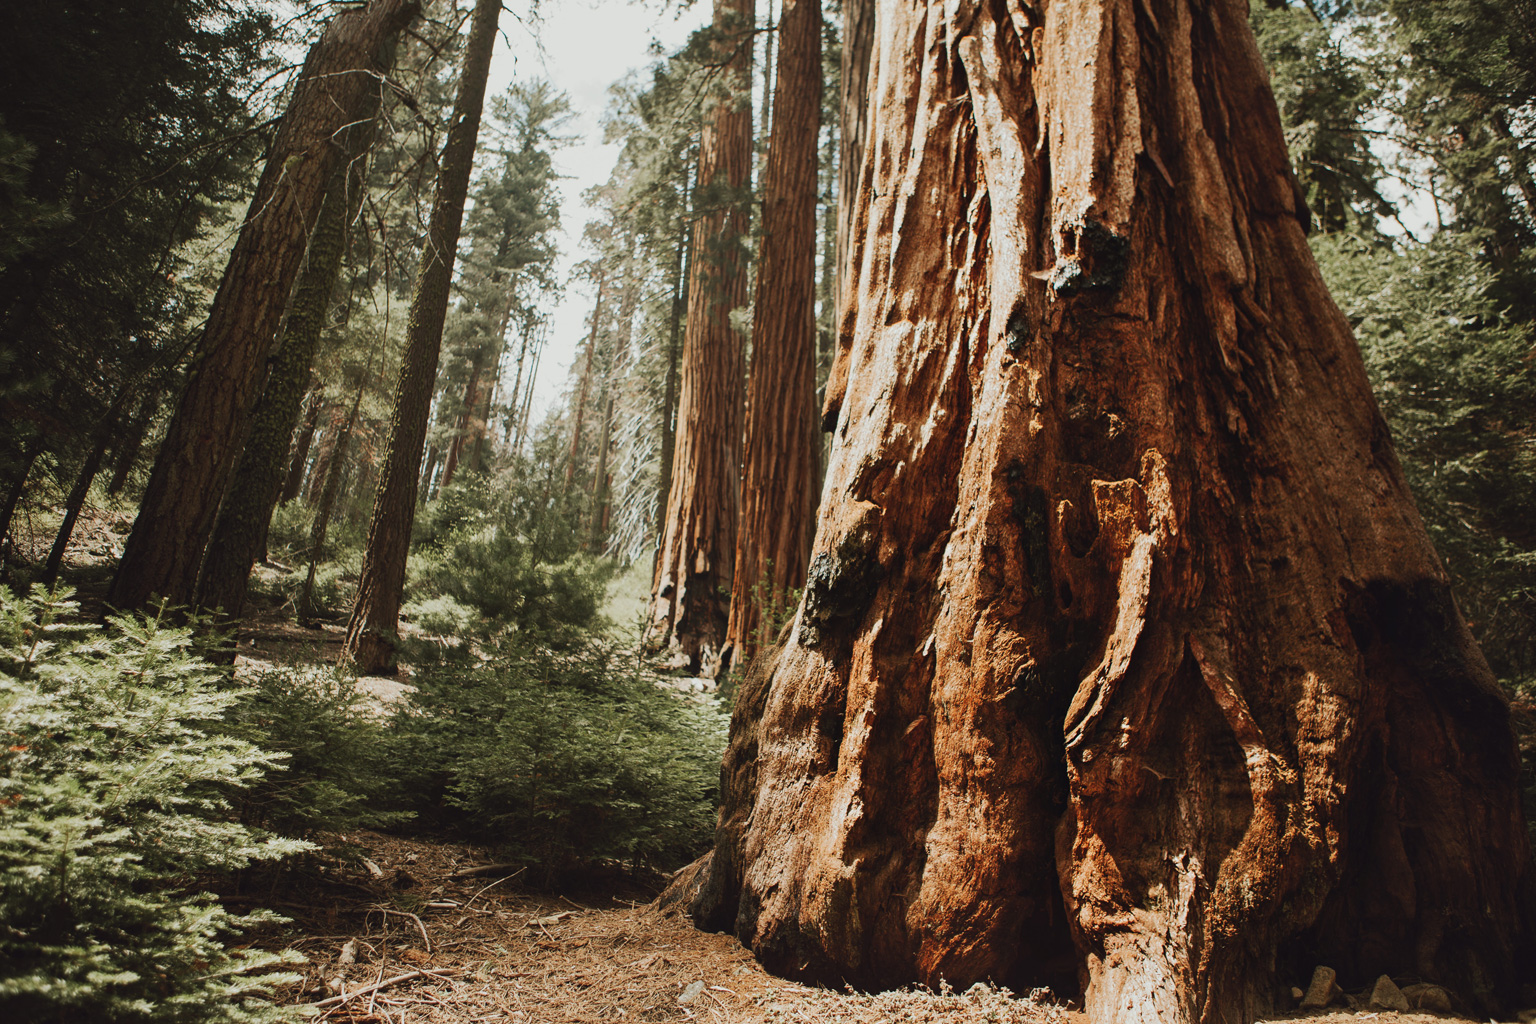 CindyGiovagnoli_Sequoia_Kings_Canyon_National_Park_spring_hiking_dogwood-009.jpg